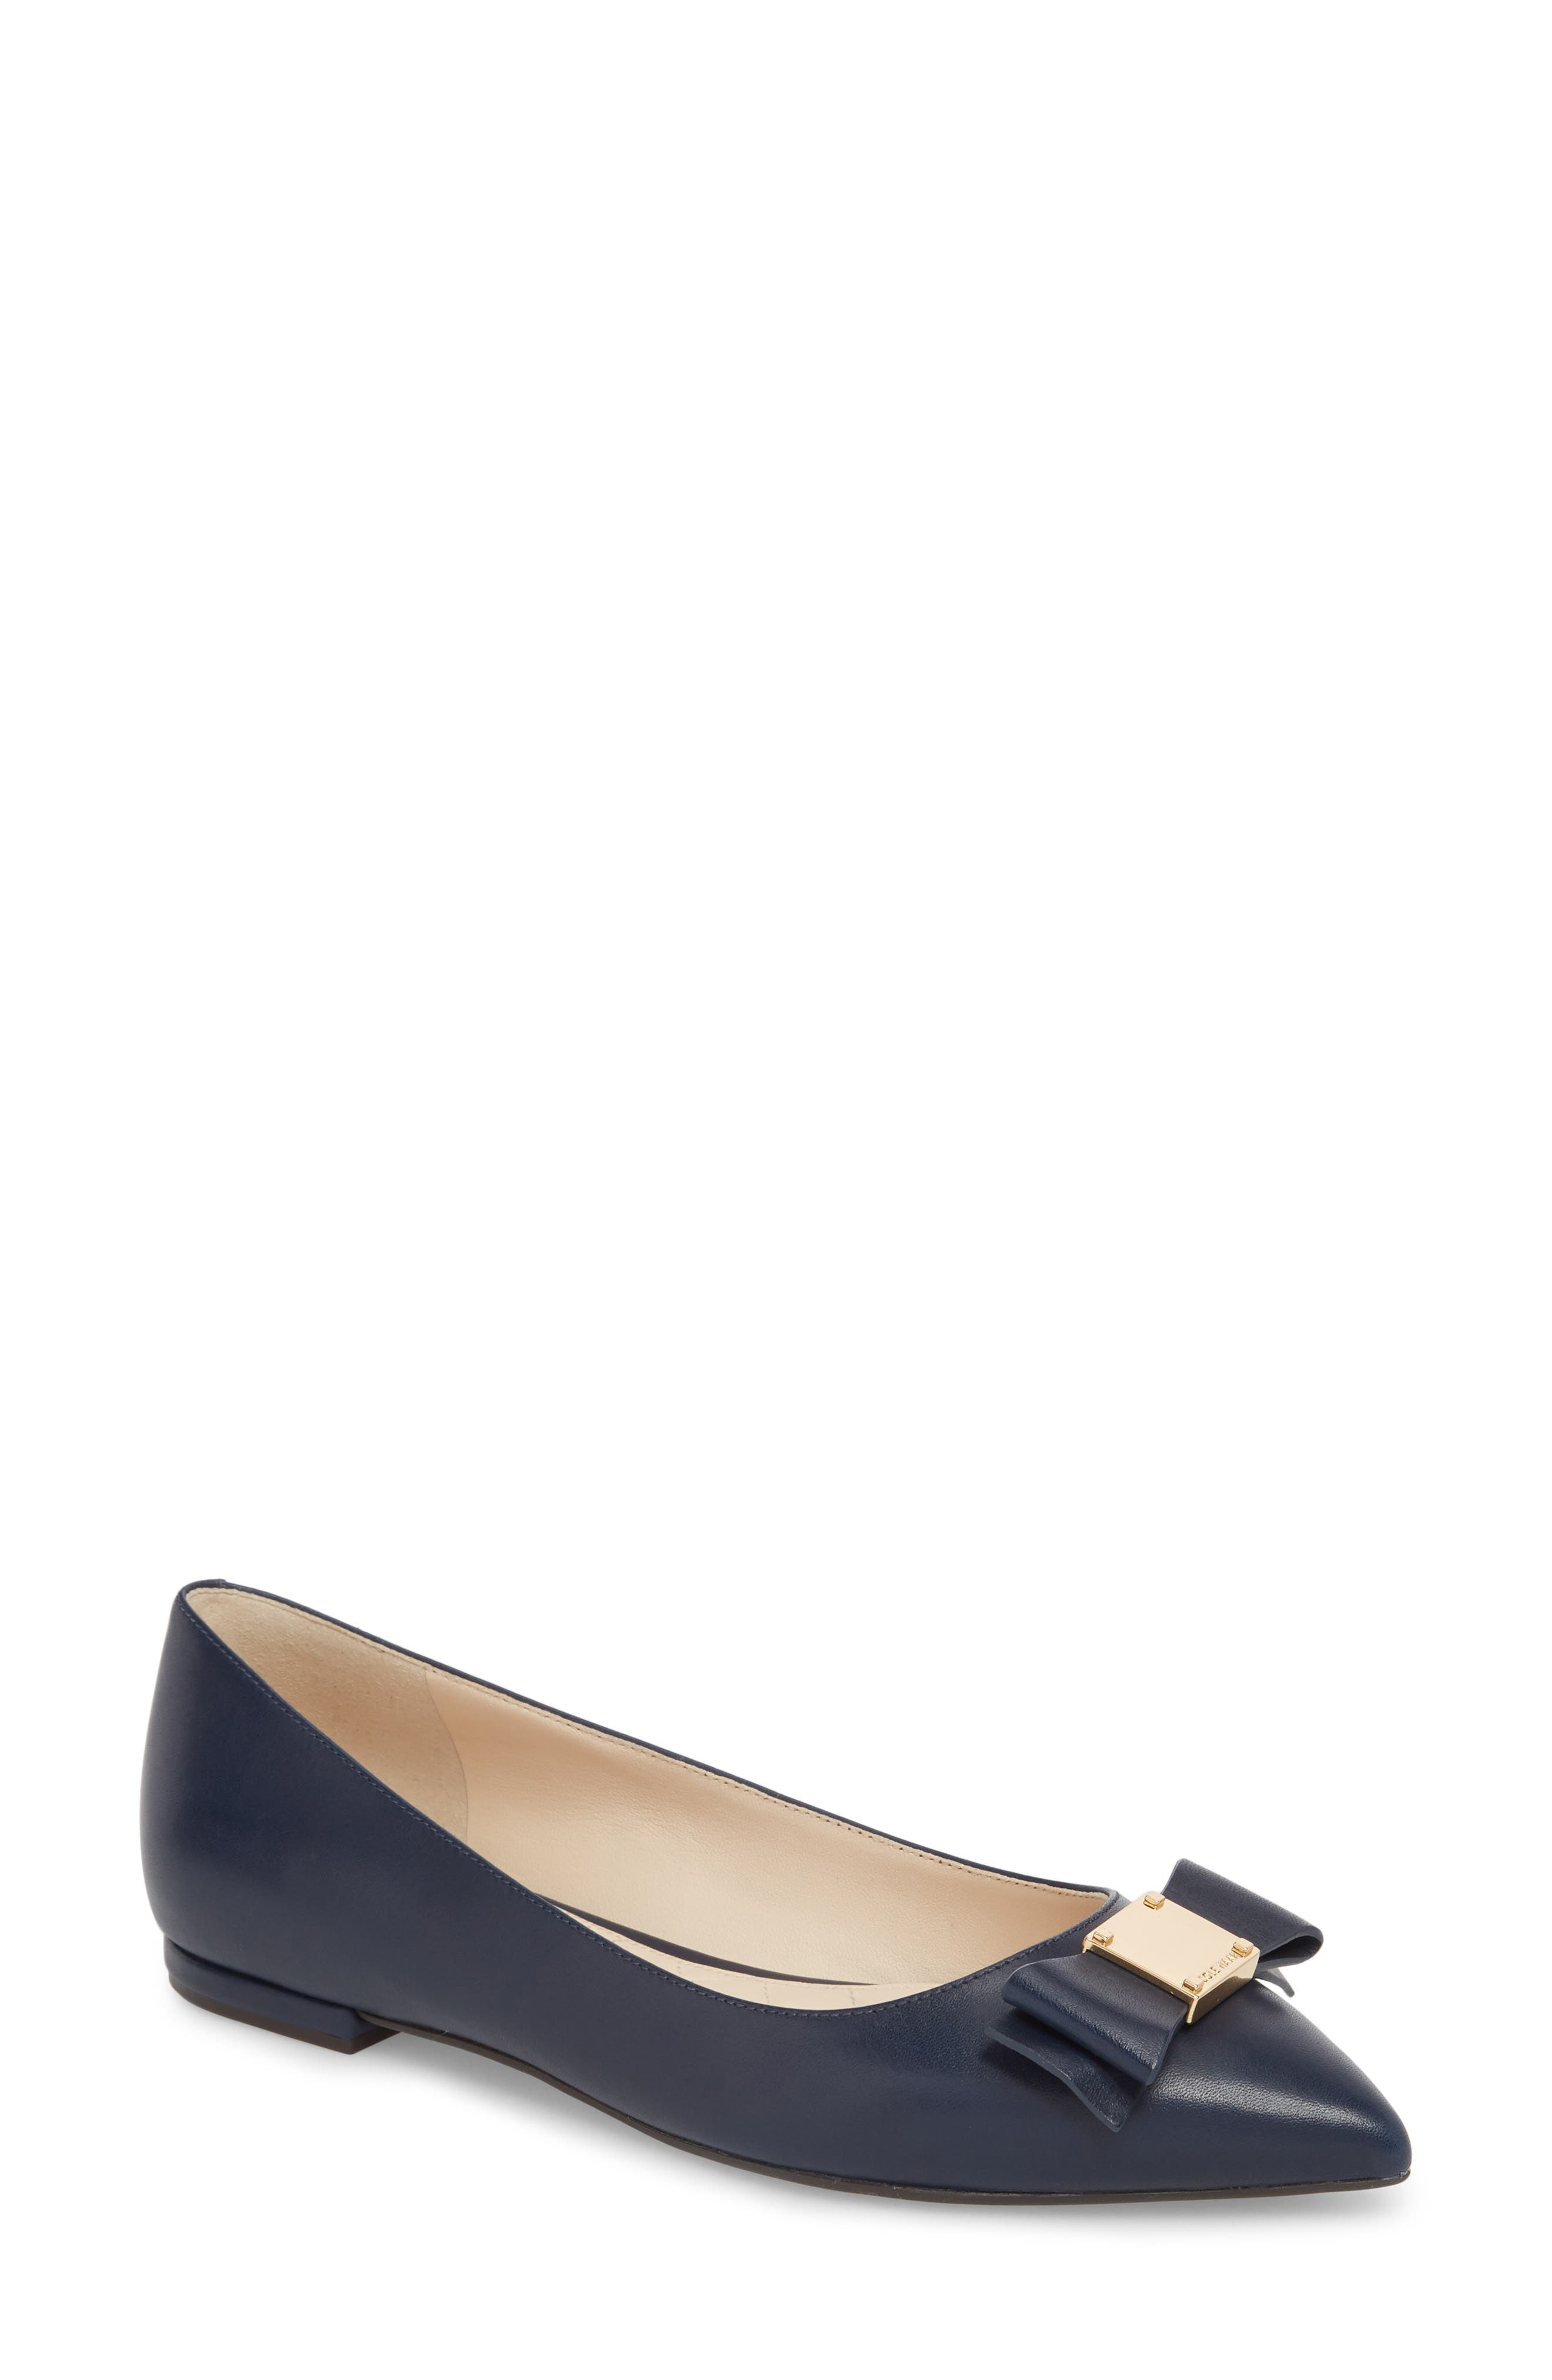 COLE HAAN,                             Tali Bow Skimmer Flat,                             Main thumbnail 1, color,                             400